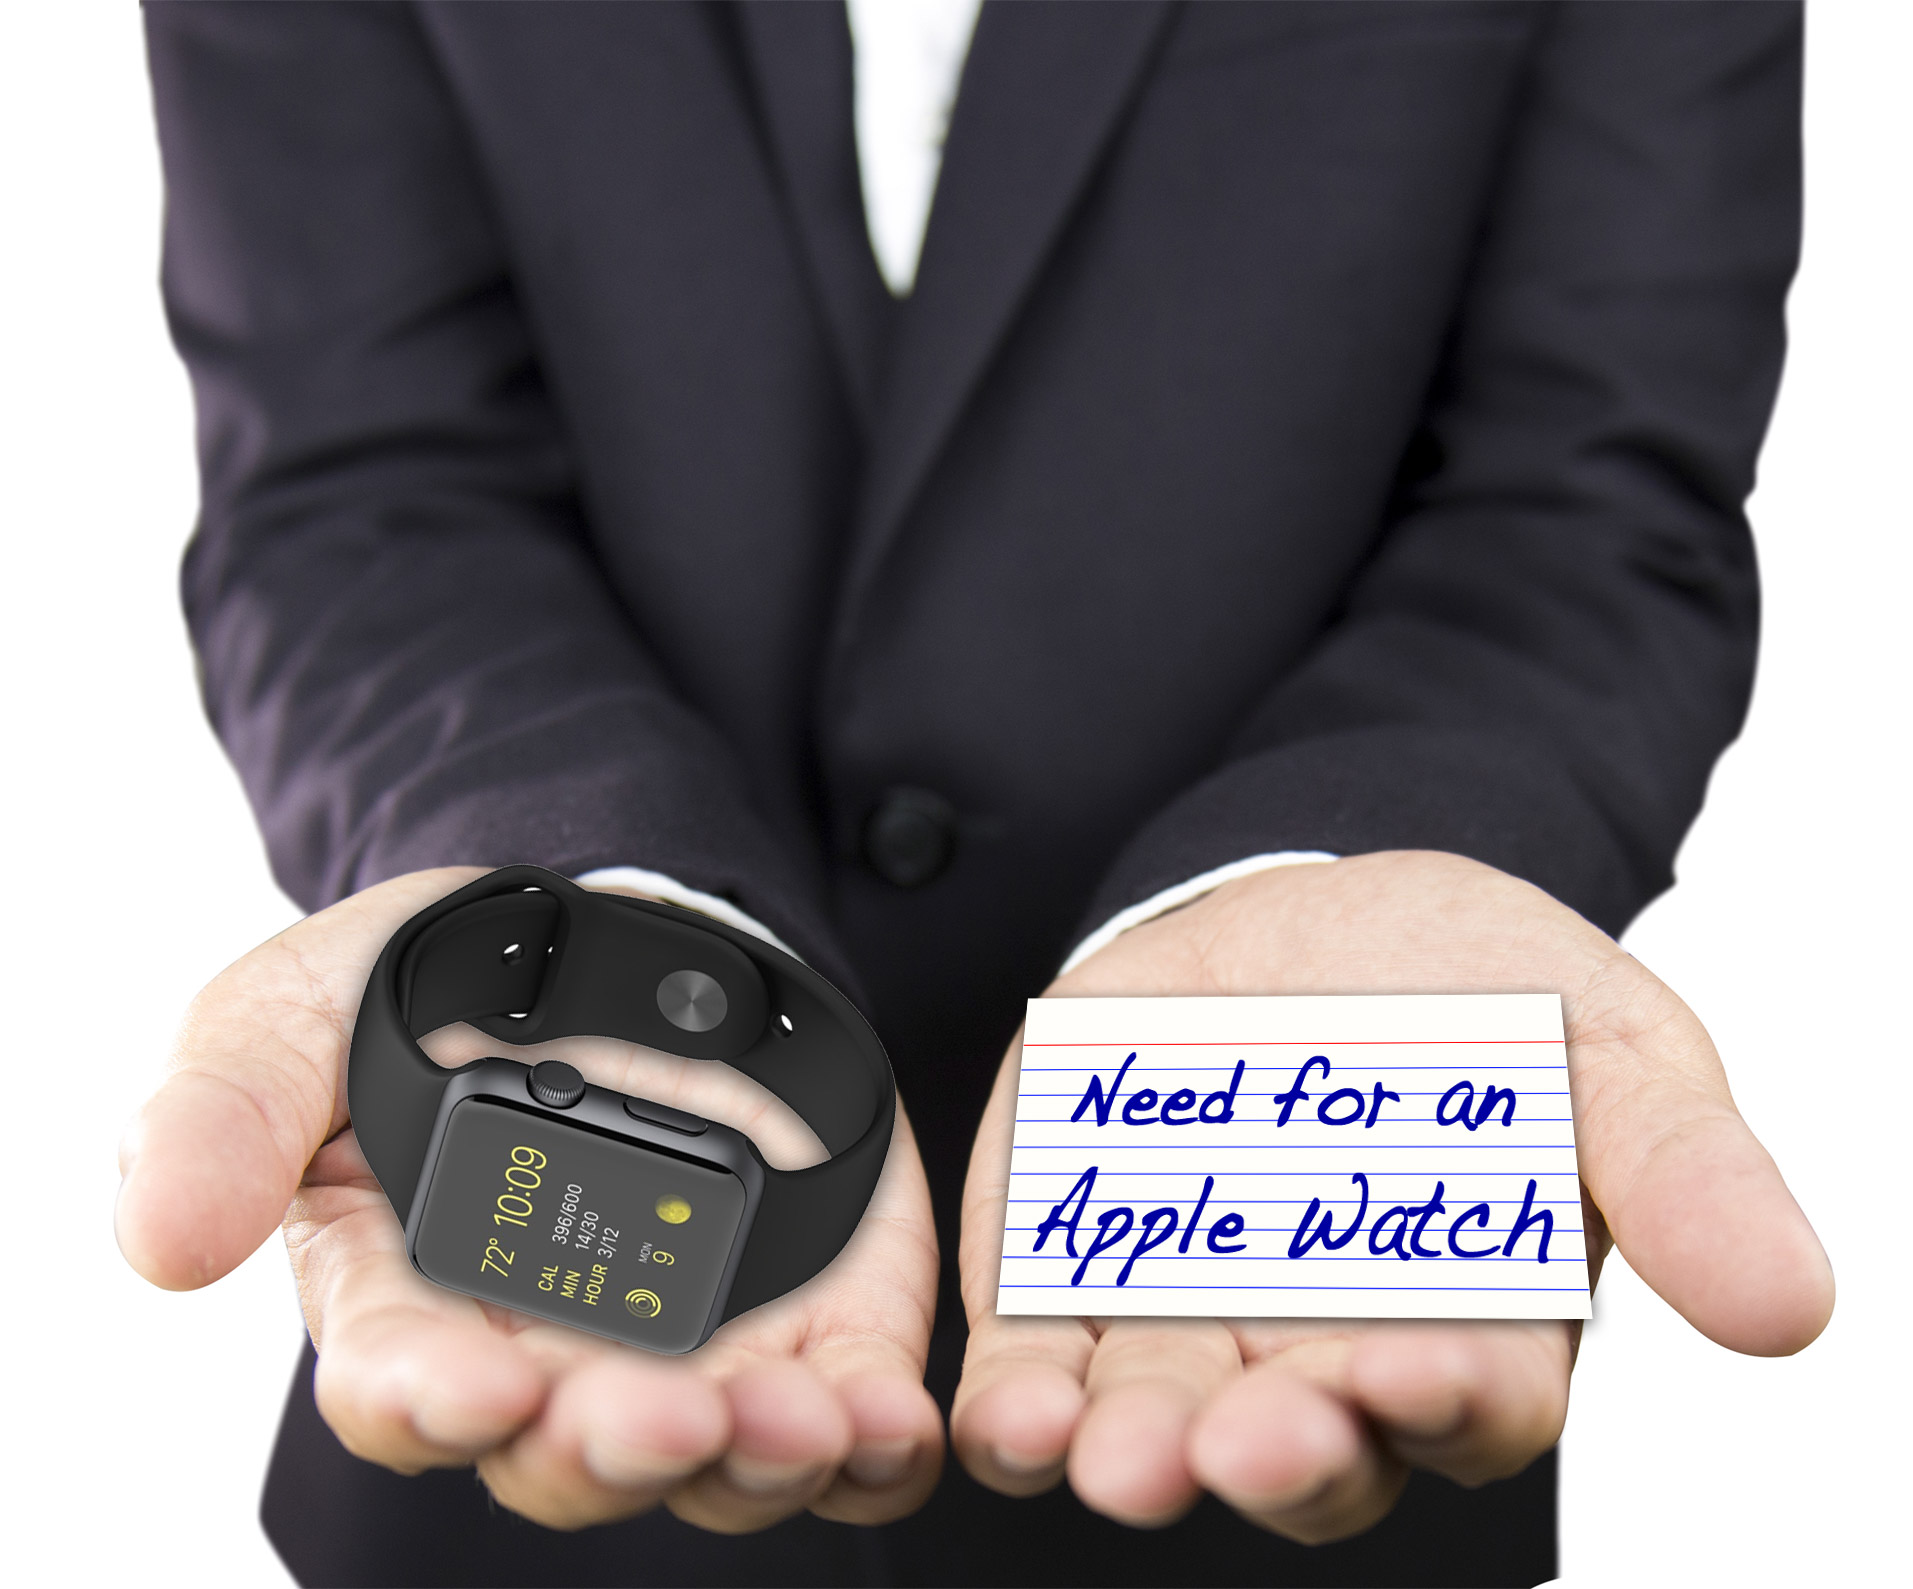 Hands weighing Apple Watch and the Need for Apple Watch